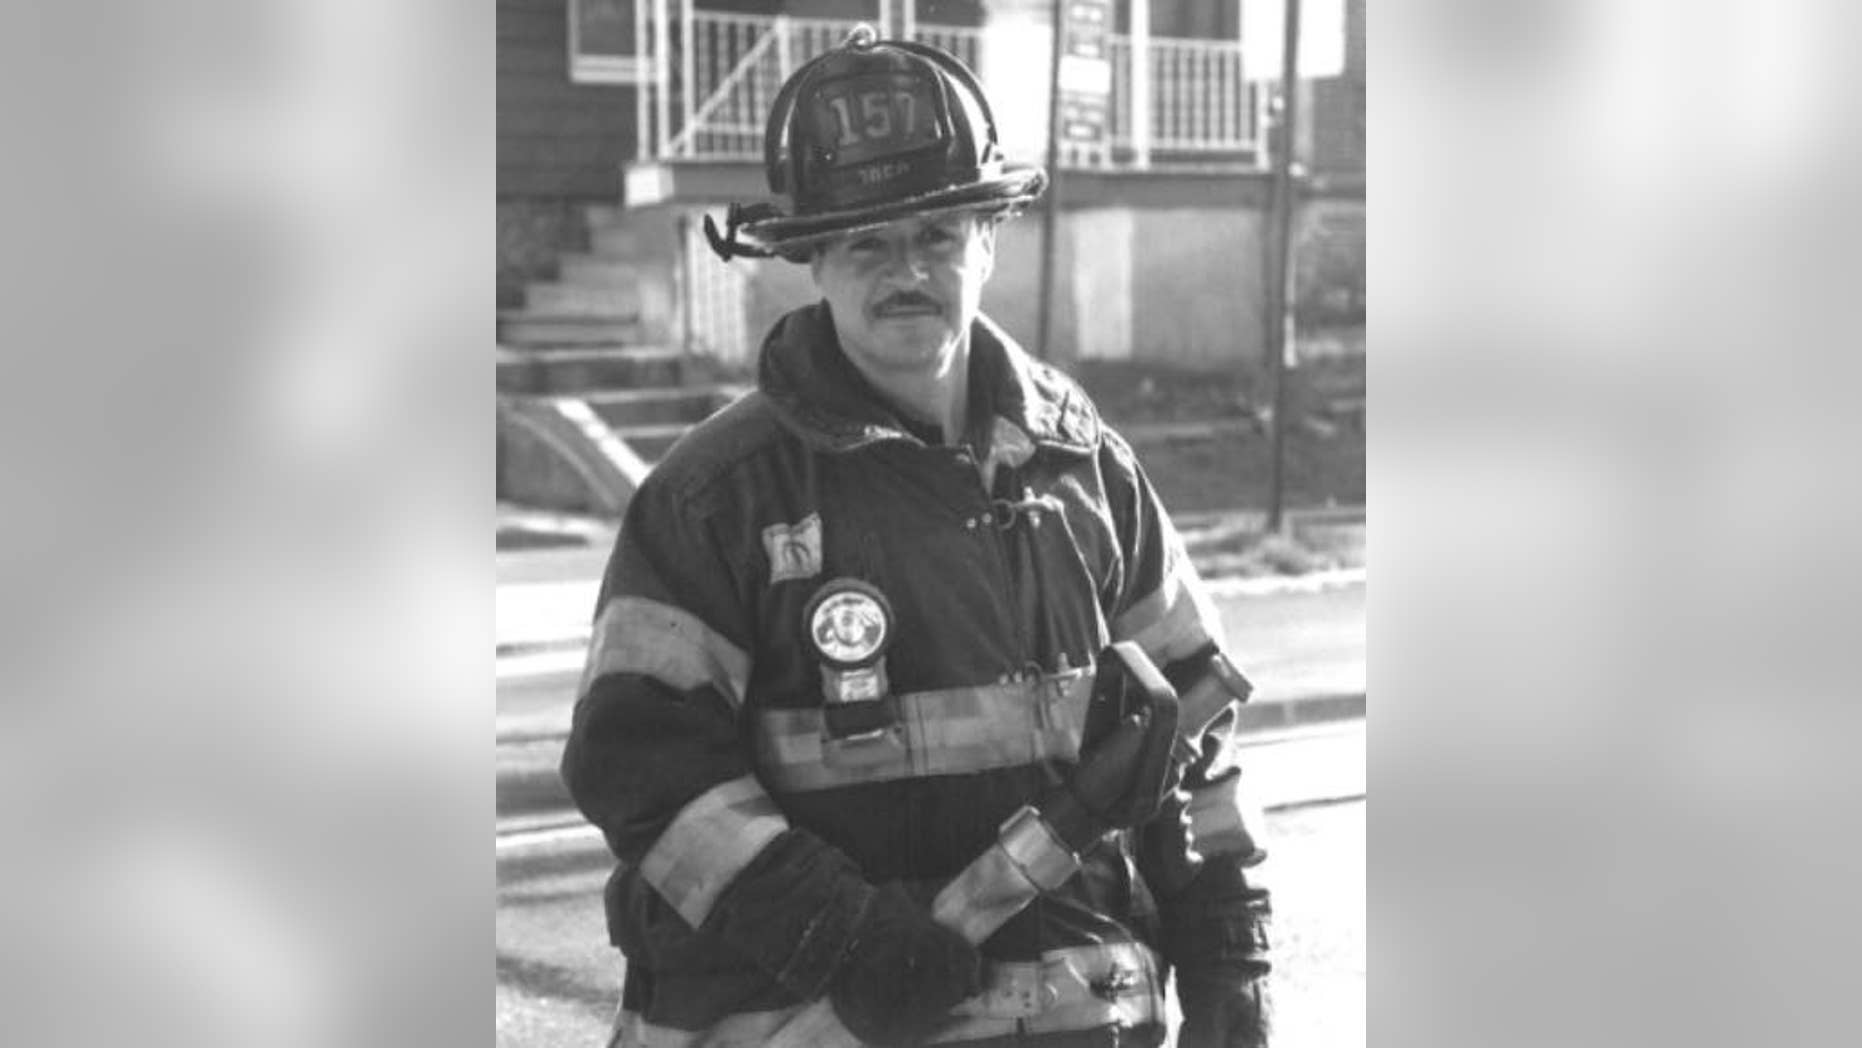 Jimmy Martinez, a 26-year veteran of the FDNY died on Thursday from cancer, believed to be linked to his response at Ground Zero after 9/11.